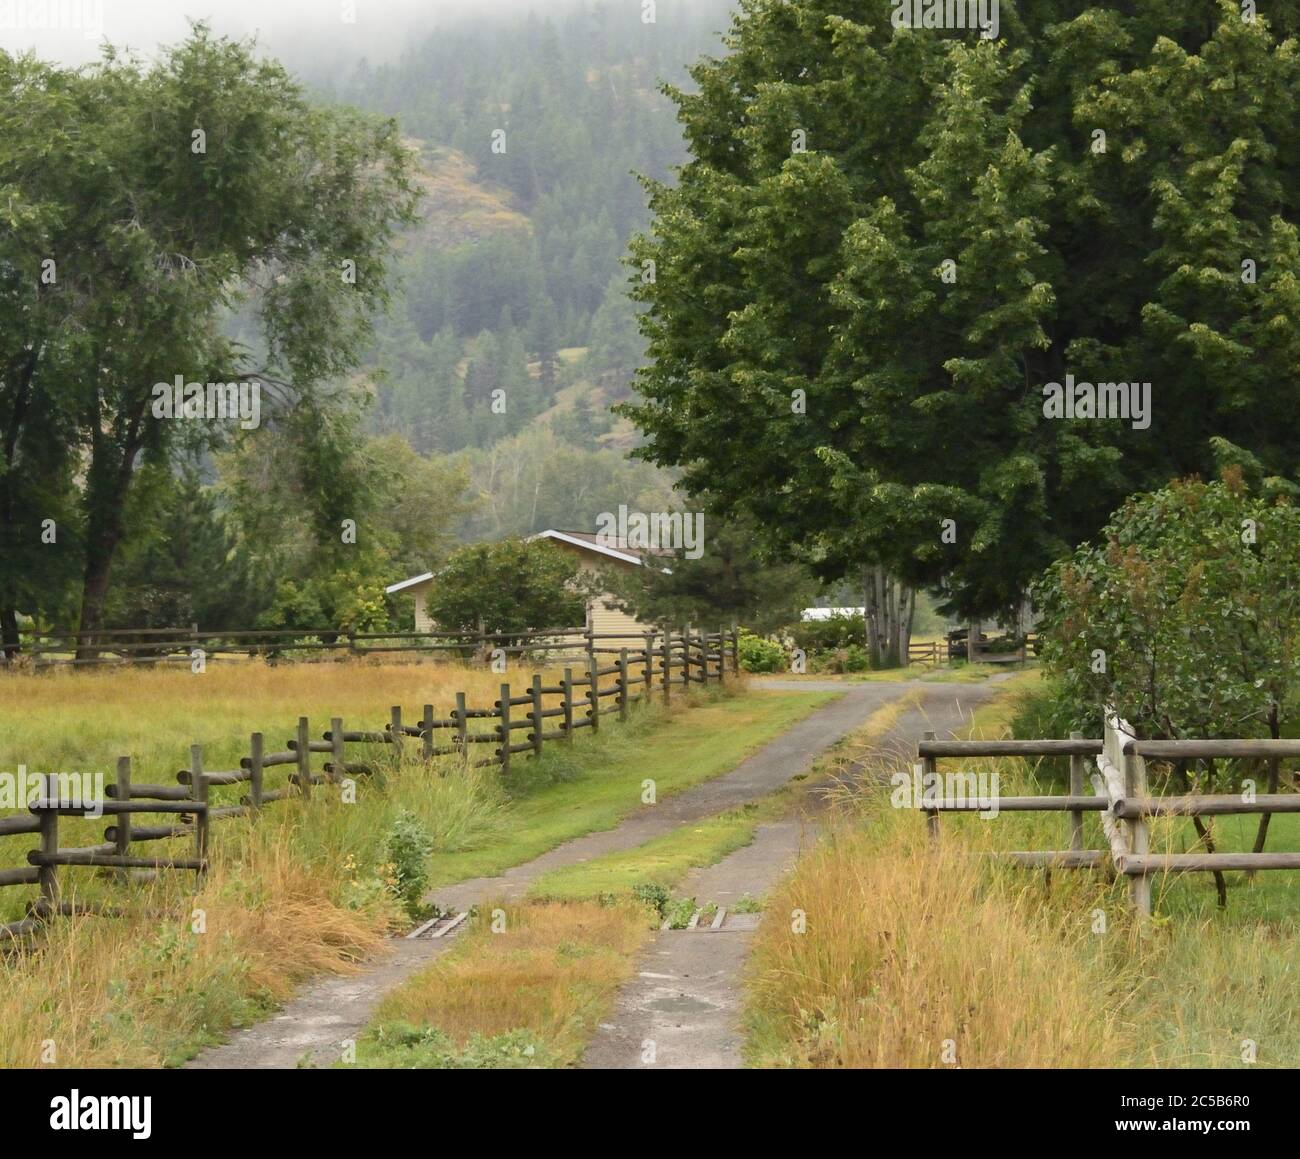 Cowboy Fence High Resolution Stock Photography And Images Alamy